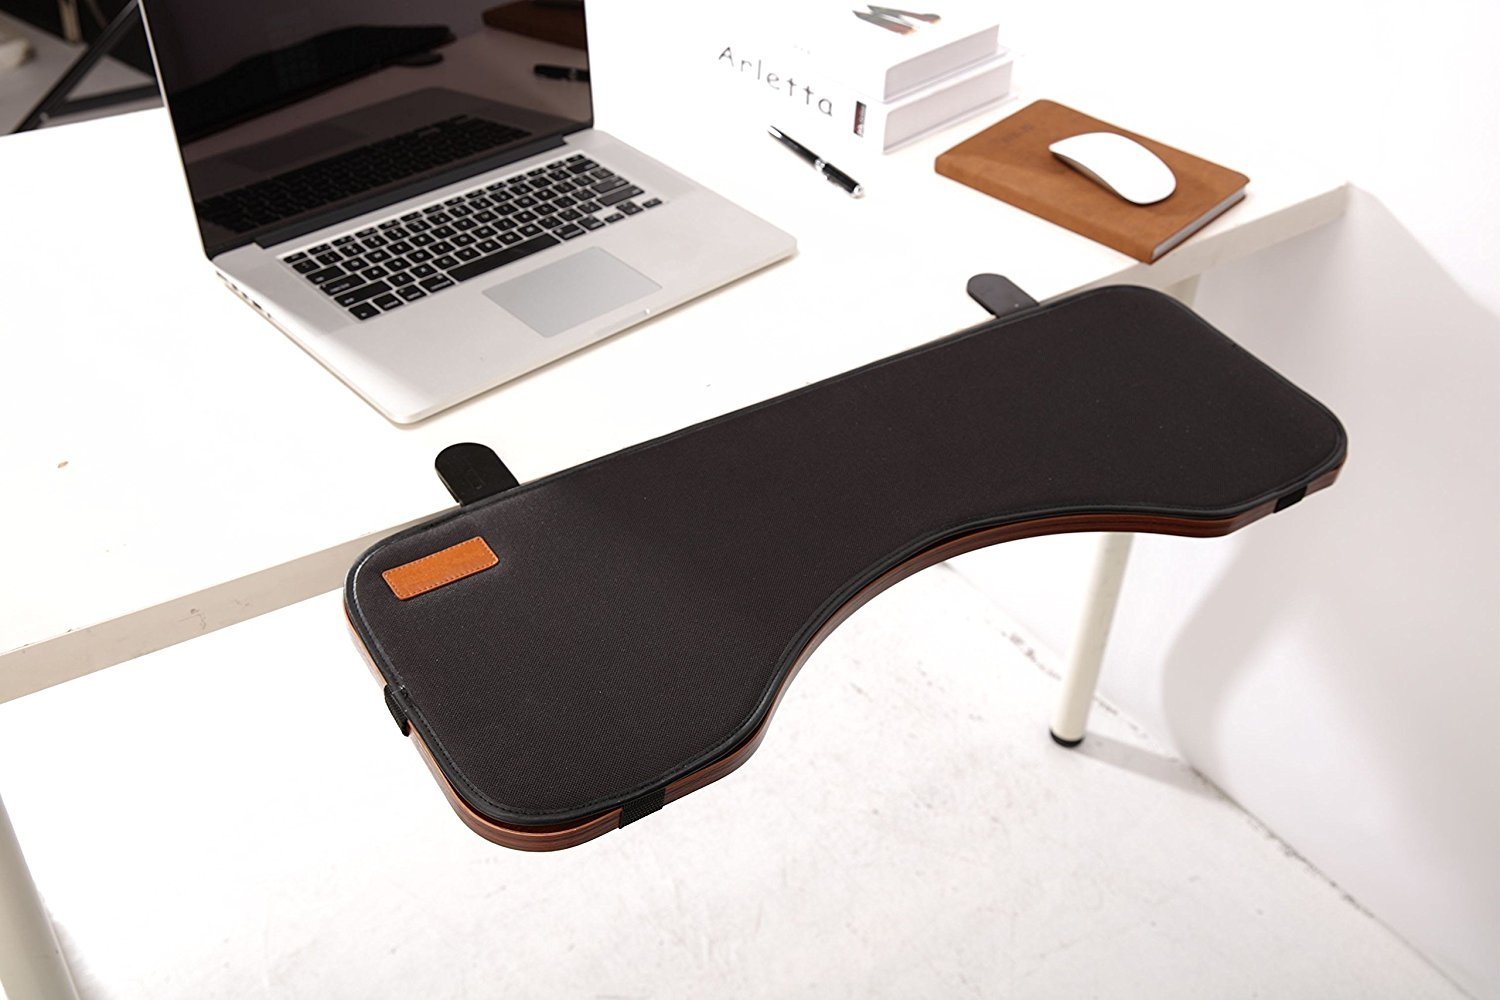 FUZADEL Elbow Wrist Support Desk Wrist Support Keyboard Tray Under Desk Adjustable Chair Mount Keyboard and Mouse Tray Fold Down Dable Extender by FUZADEL